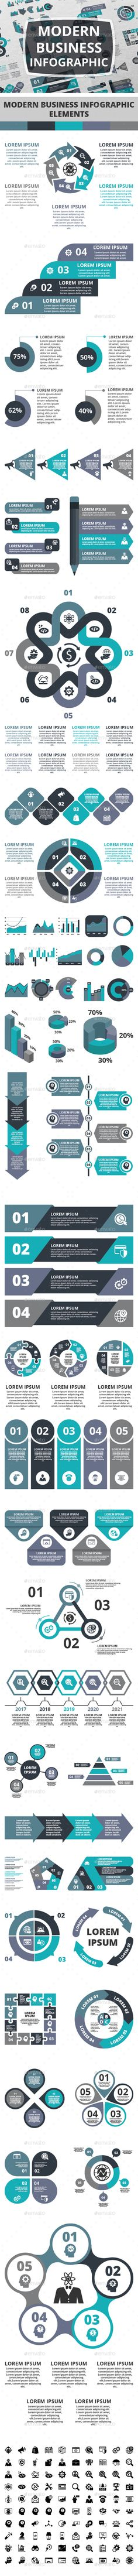 Modern Business Infographic Templates Vector EPS, AI